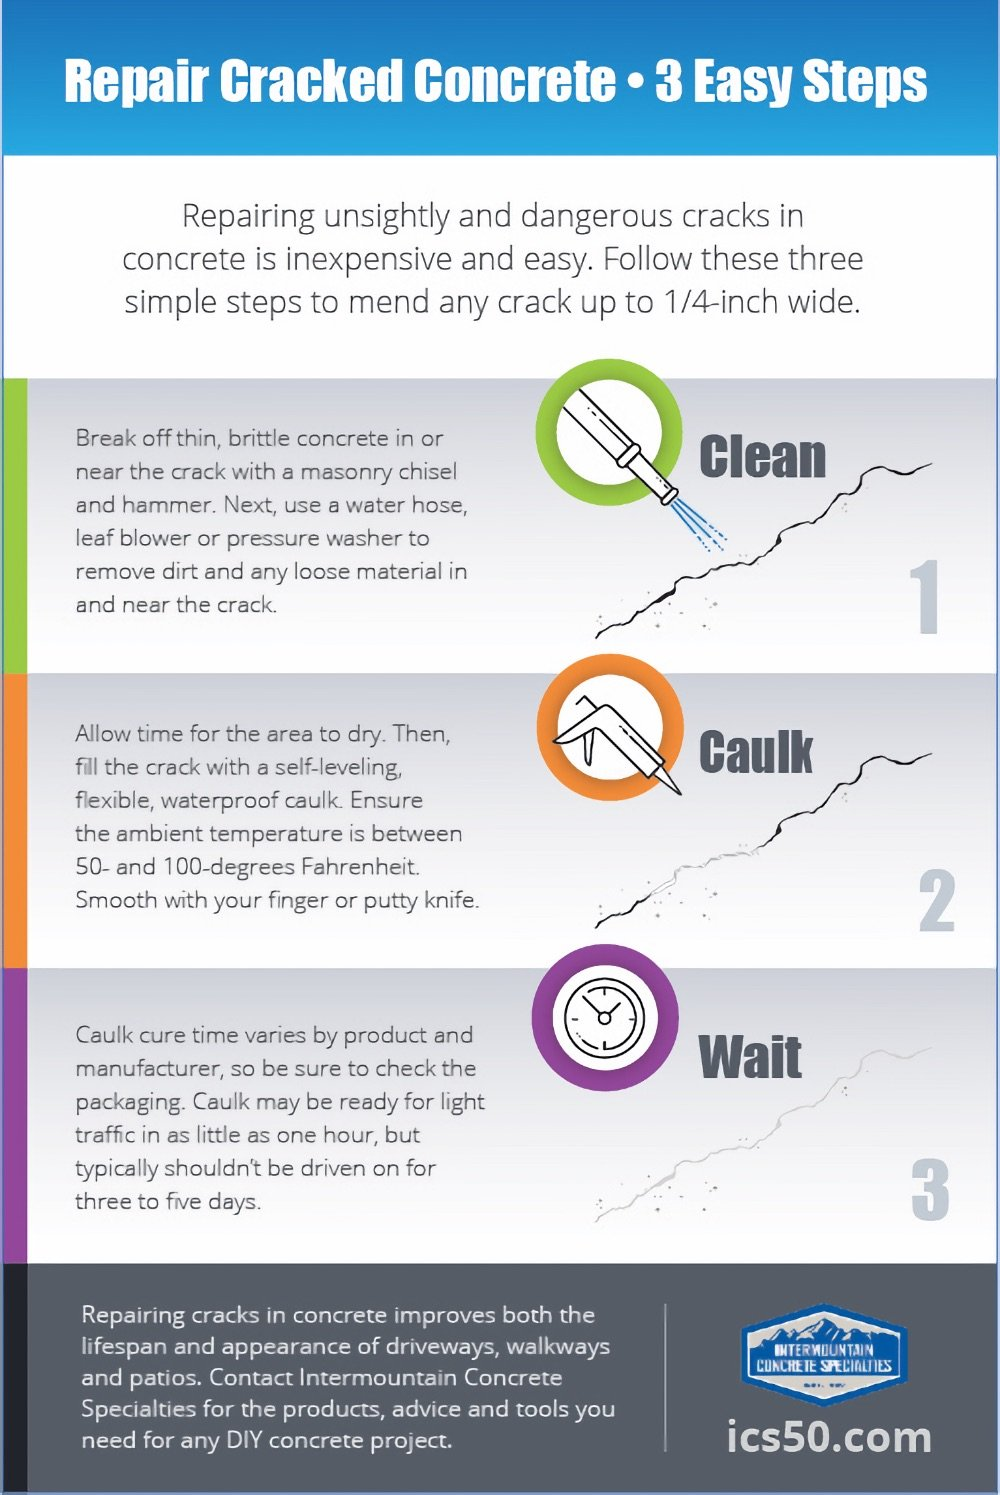 How to Repair Cracked Concrete (Infographic)